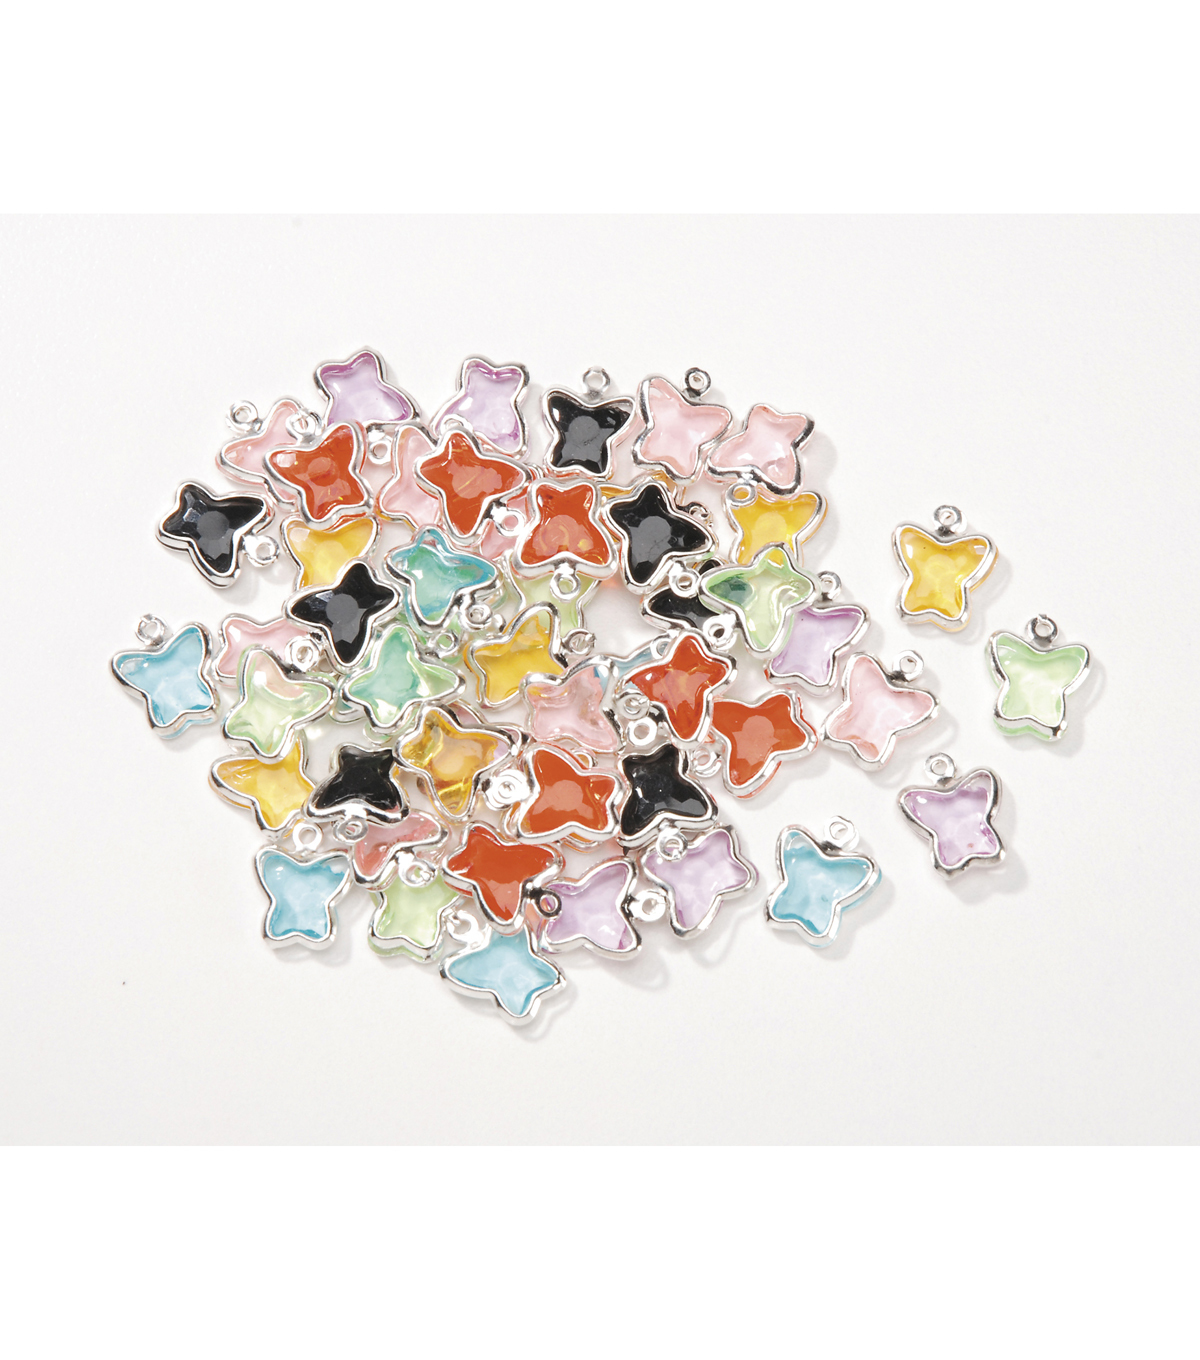 Acrylic Butterfly Shaped Charms, Assort. Colors, 8.5mm x 12mm, 50pcs/pkg